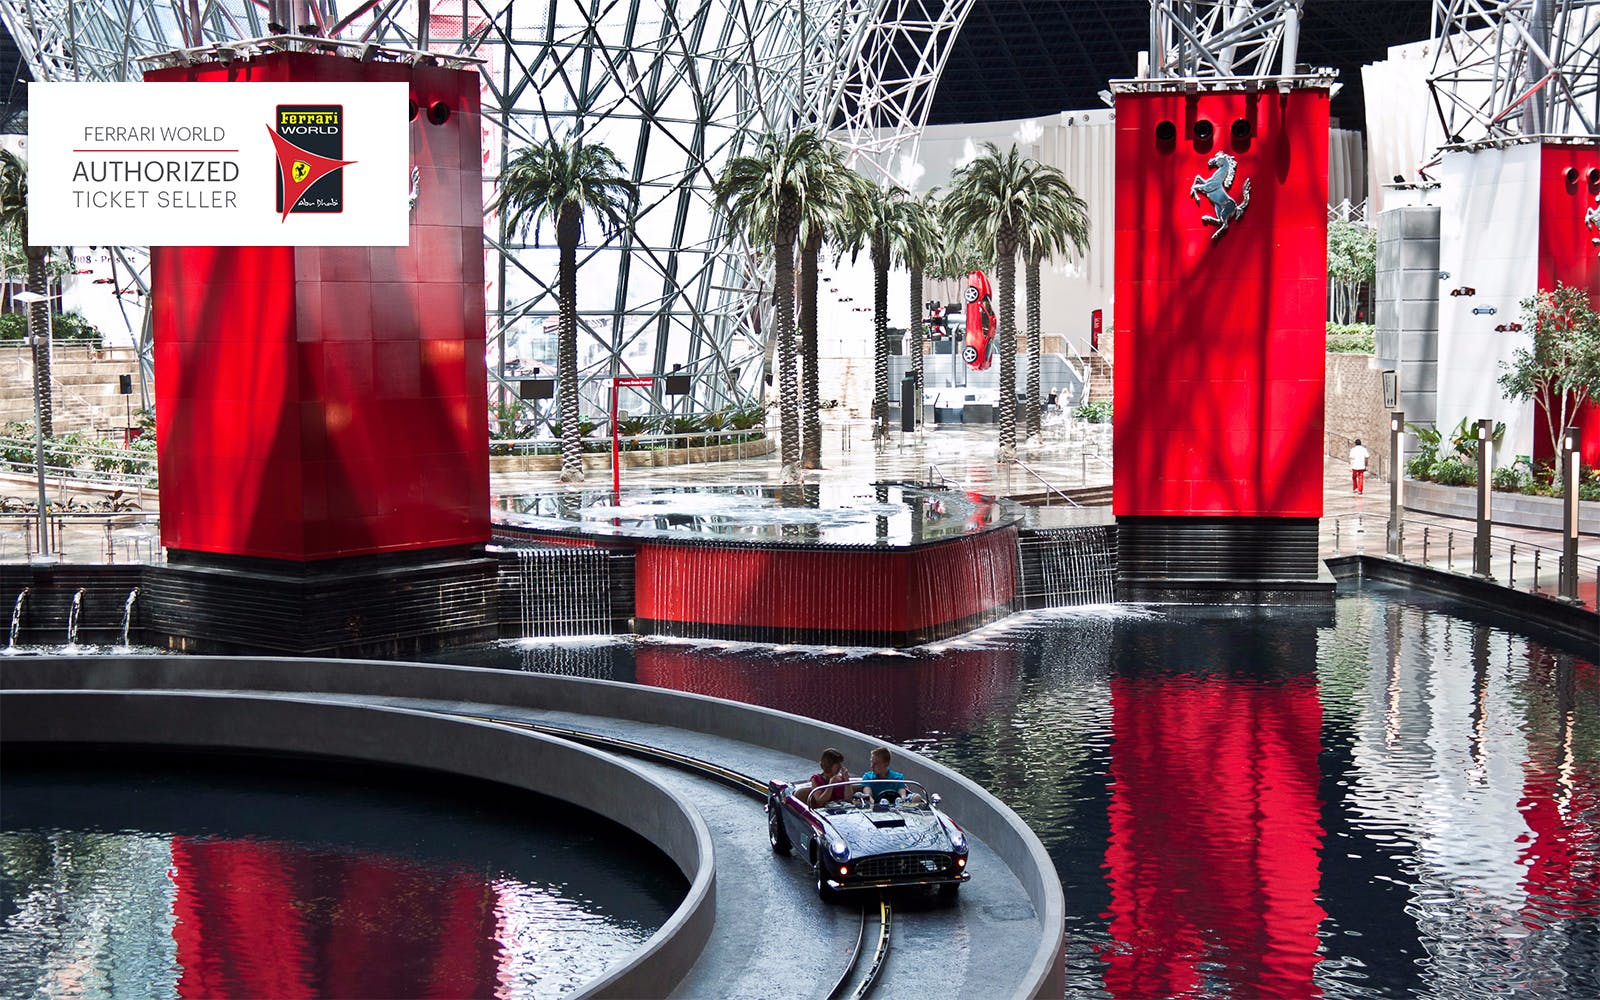 ferrari world tickets with transfers-1